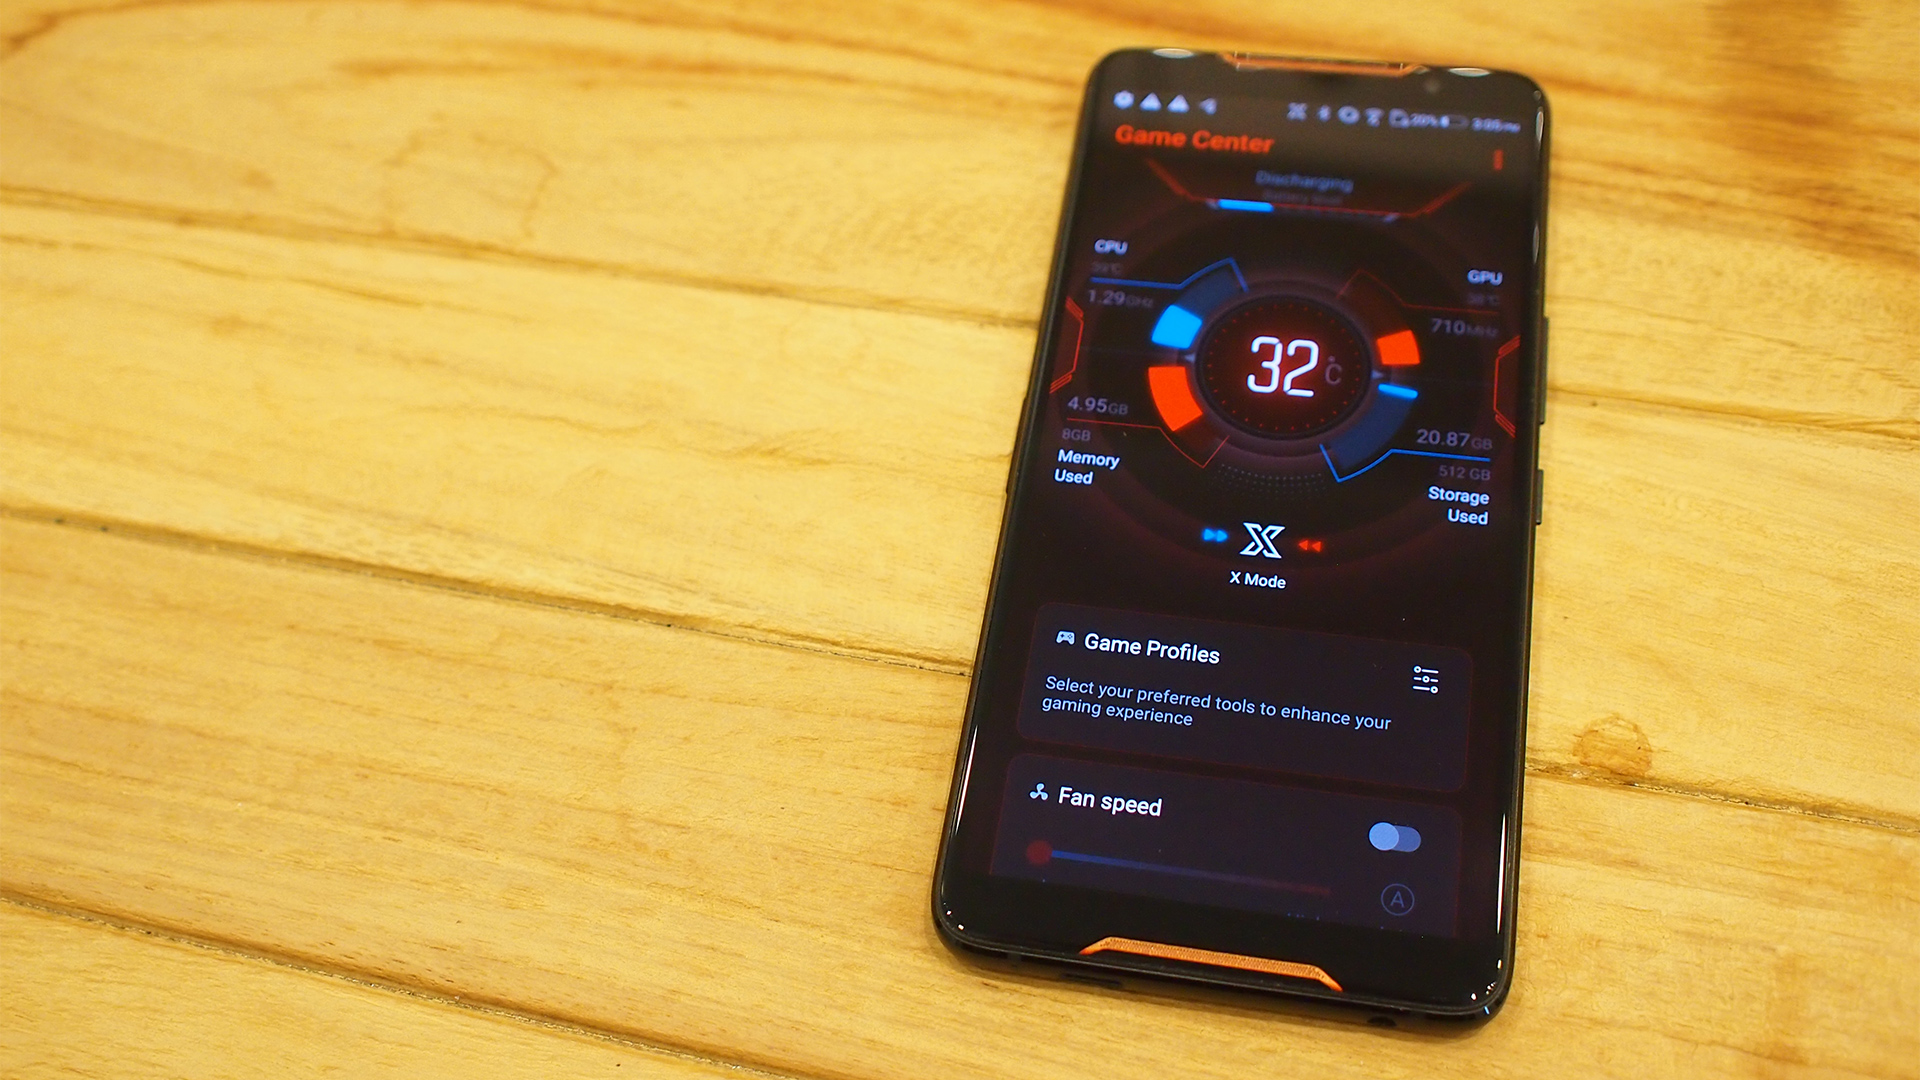 Hands-on with the ASUS ROG Phone - GameAxis